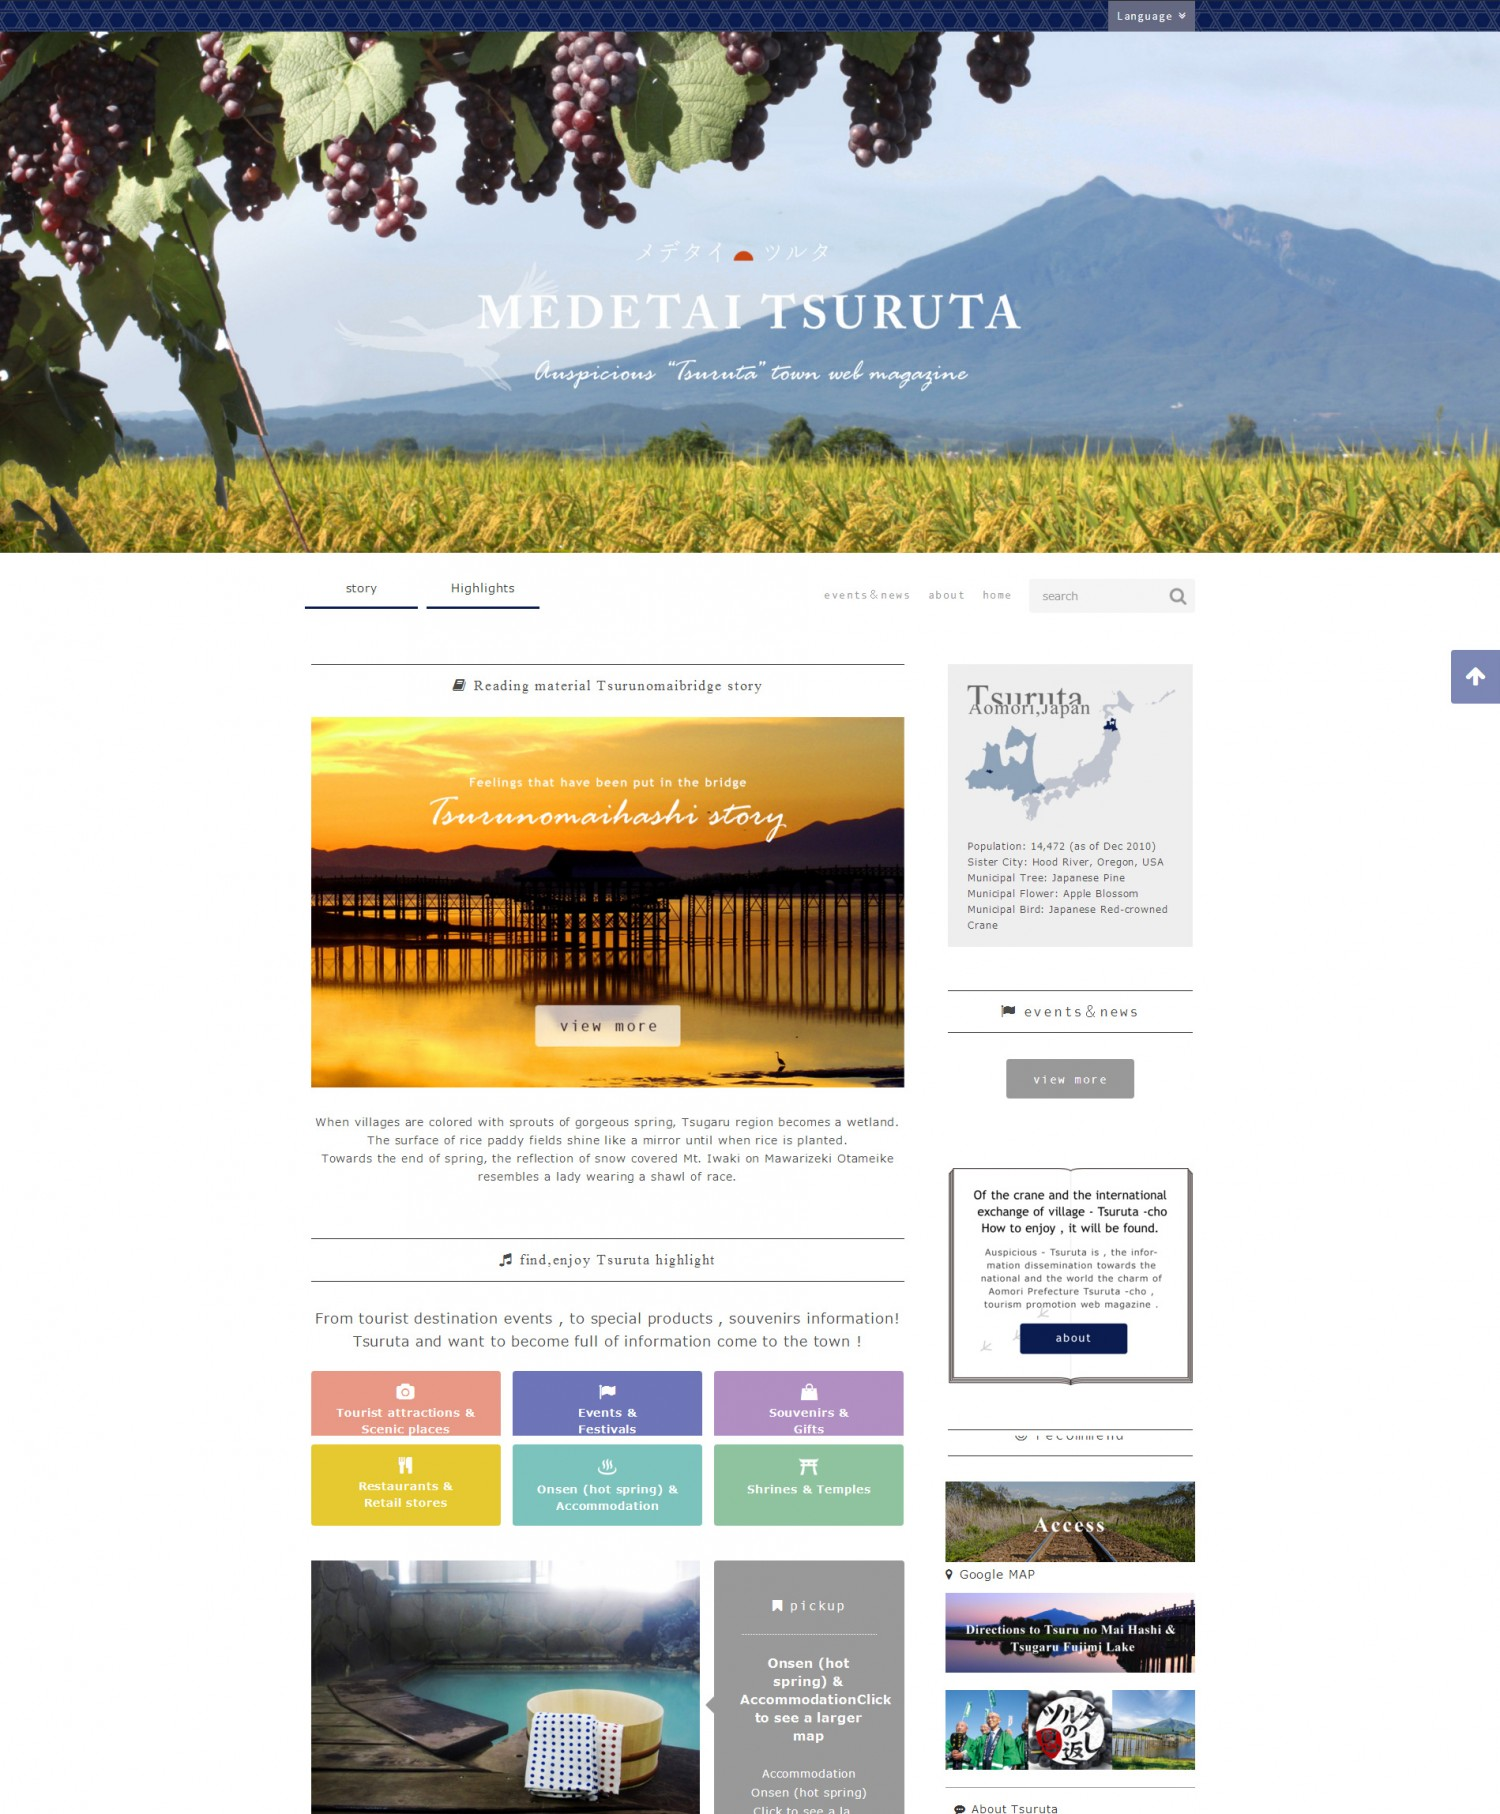 "The Tsuruta Town Tourist Information Global Web Site ""Medetai Tsuruta"" was opened!"